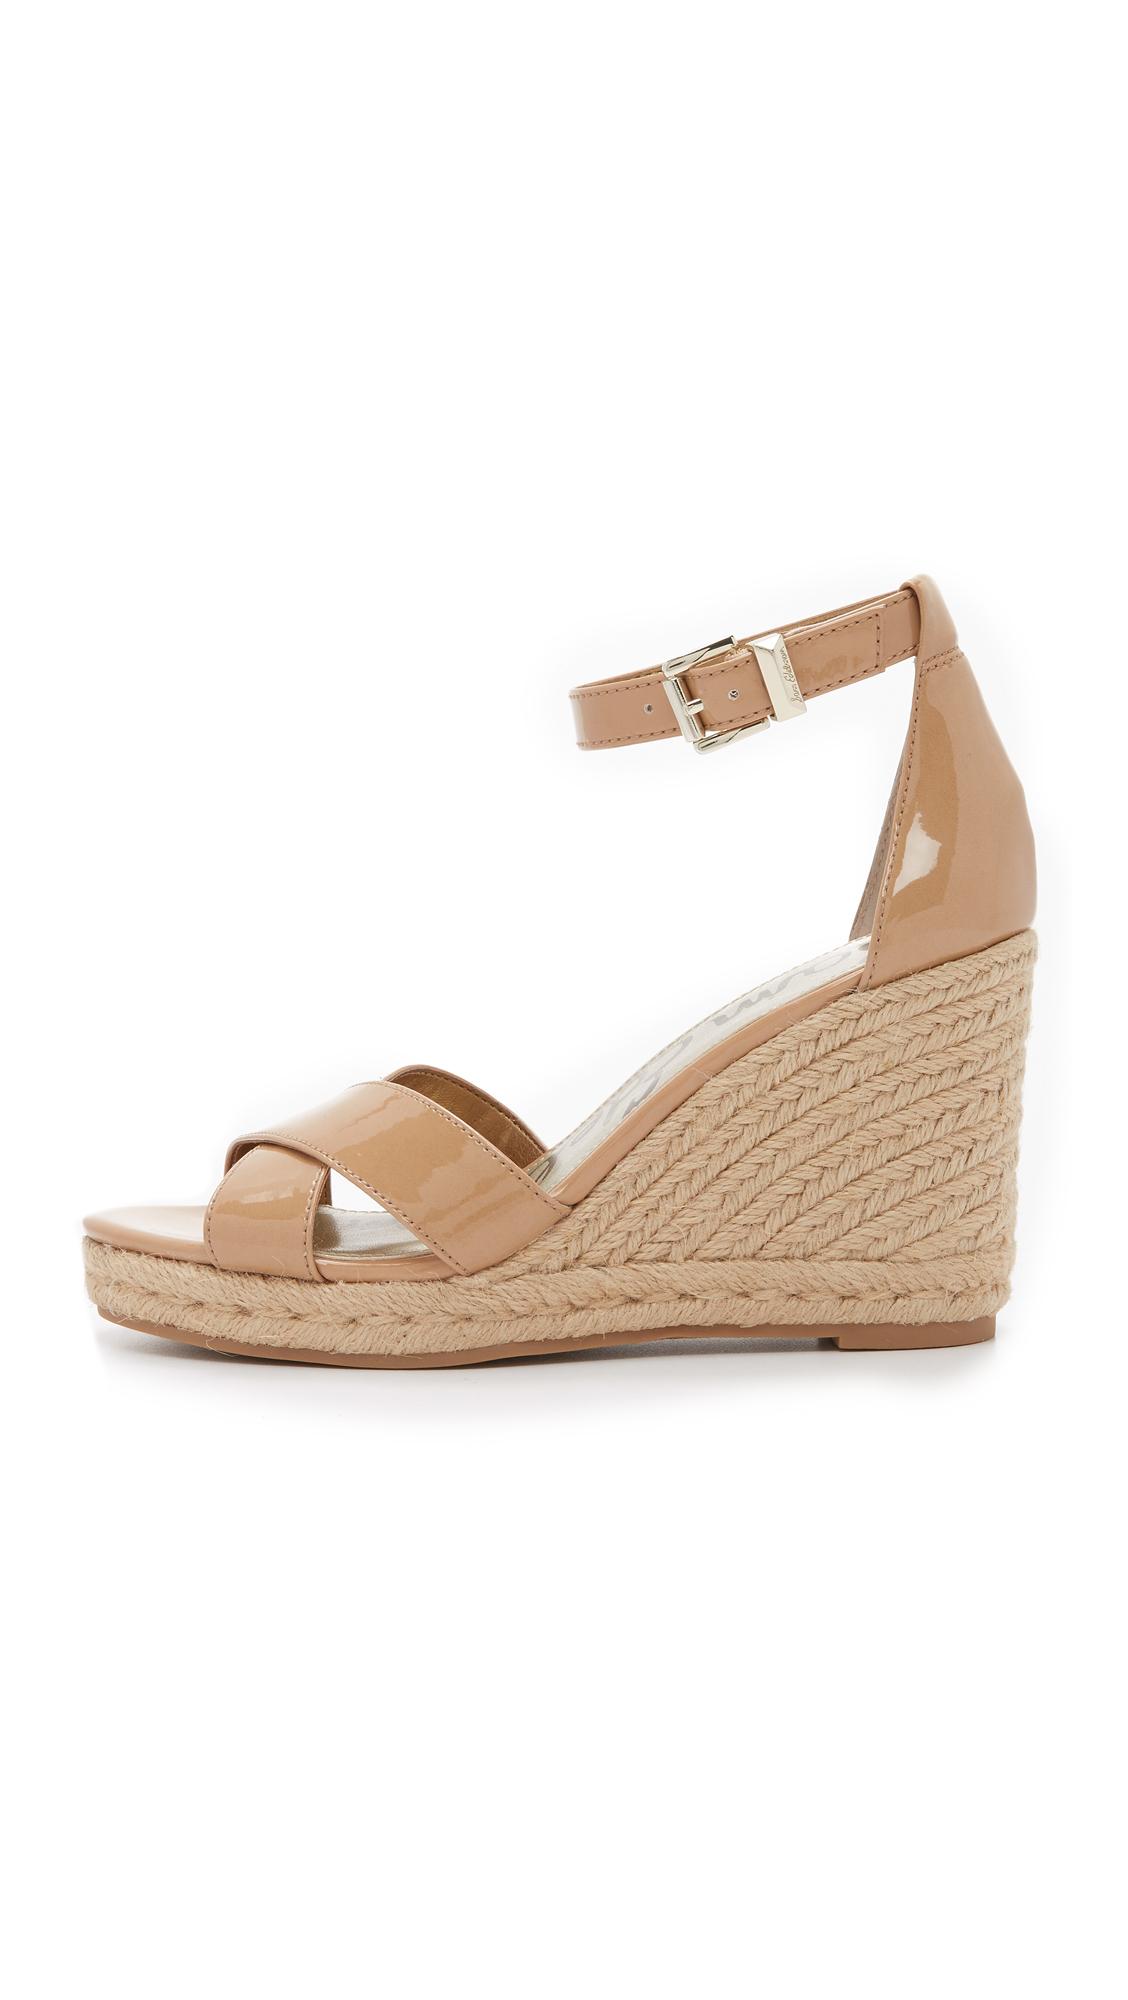 e96f33e8f700 Lyst - Sam Edelman Brenda Espadrille Wedge Sandals in Natural